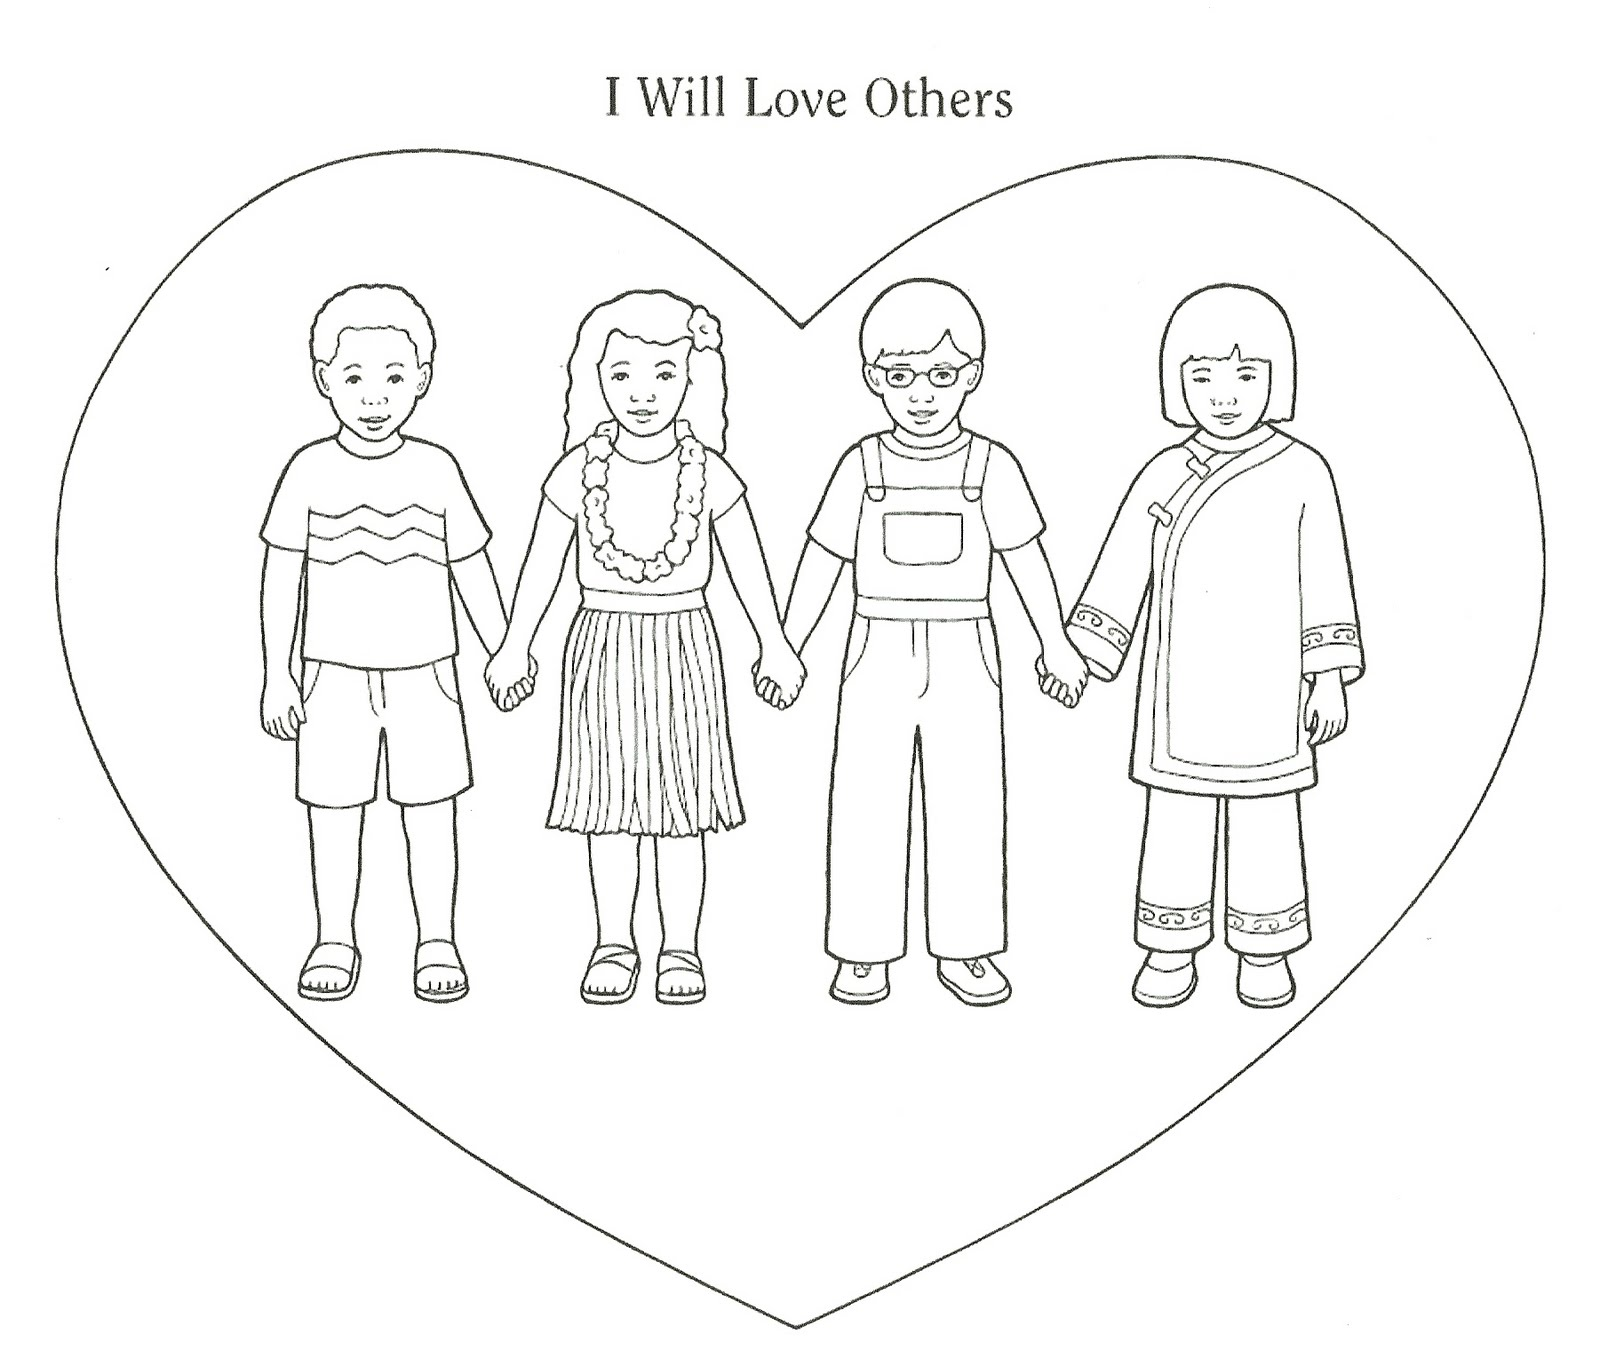 Christian Missionary Coloring Pages. 30 Christian Coloring Pages ...